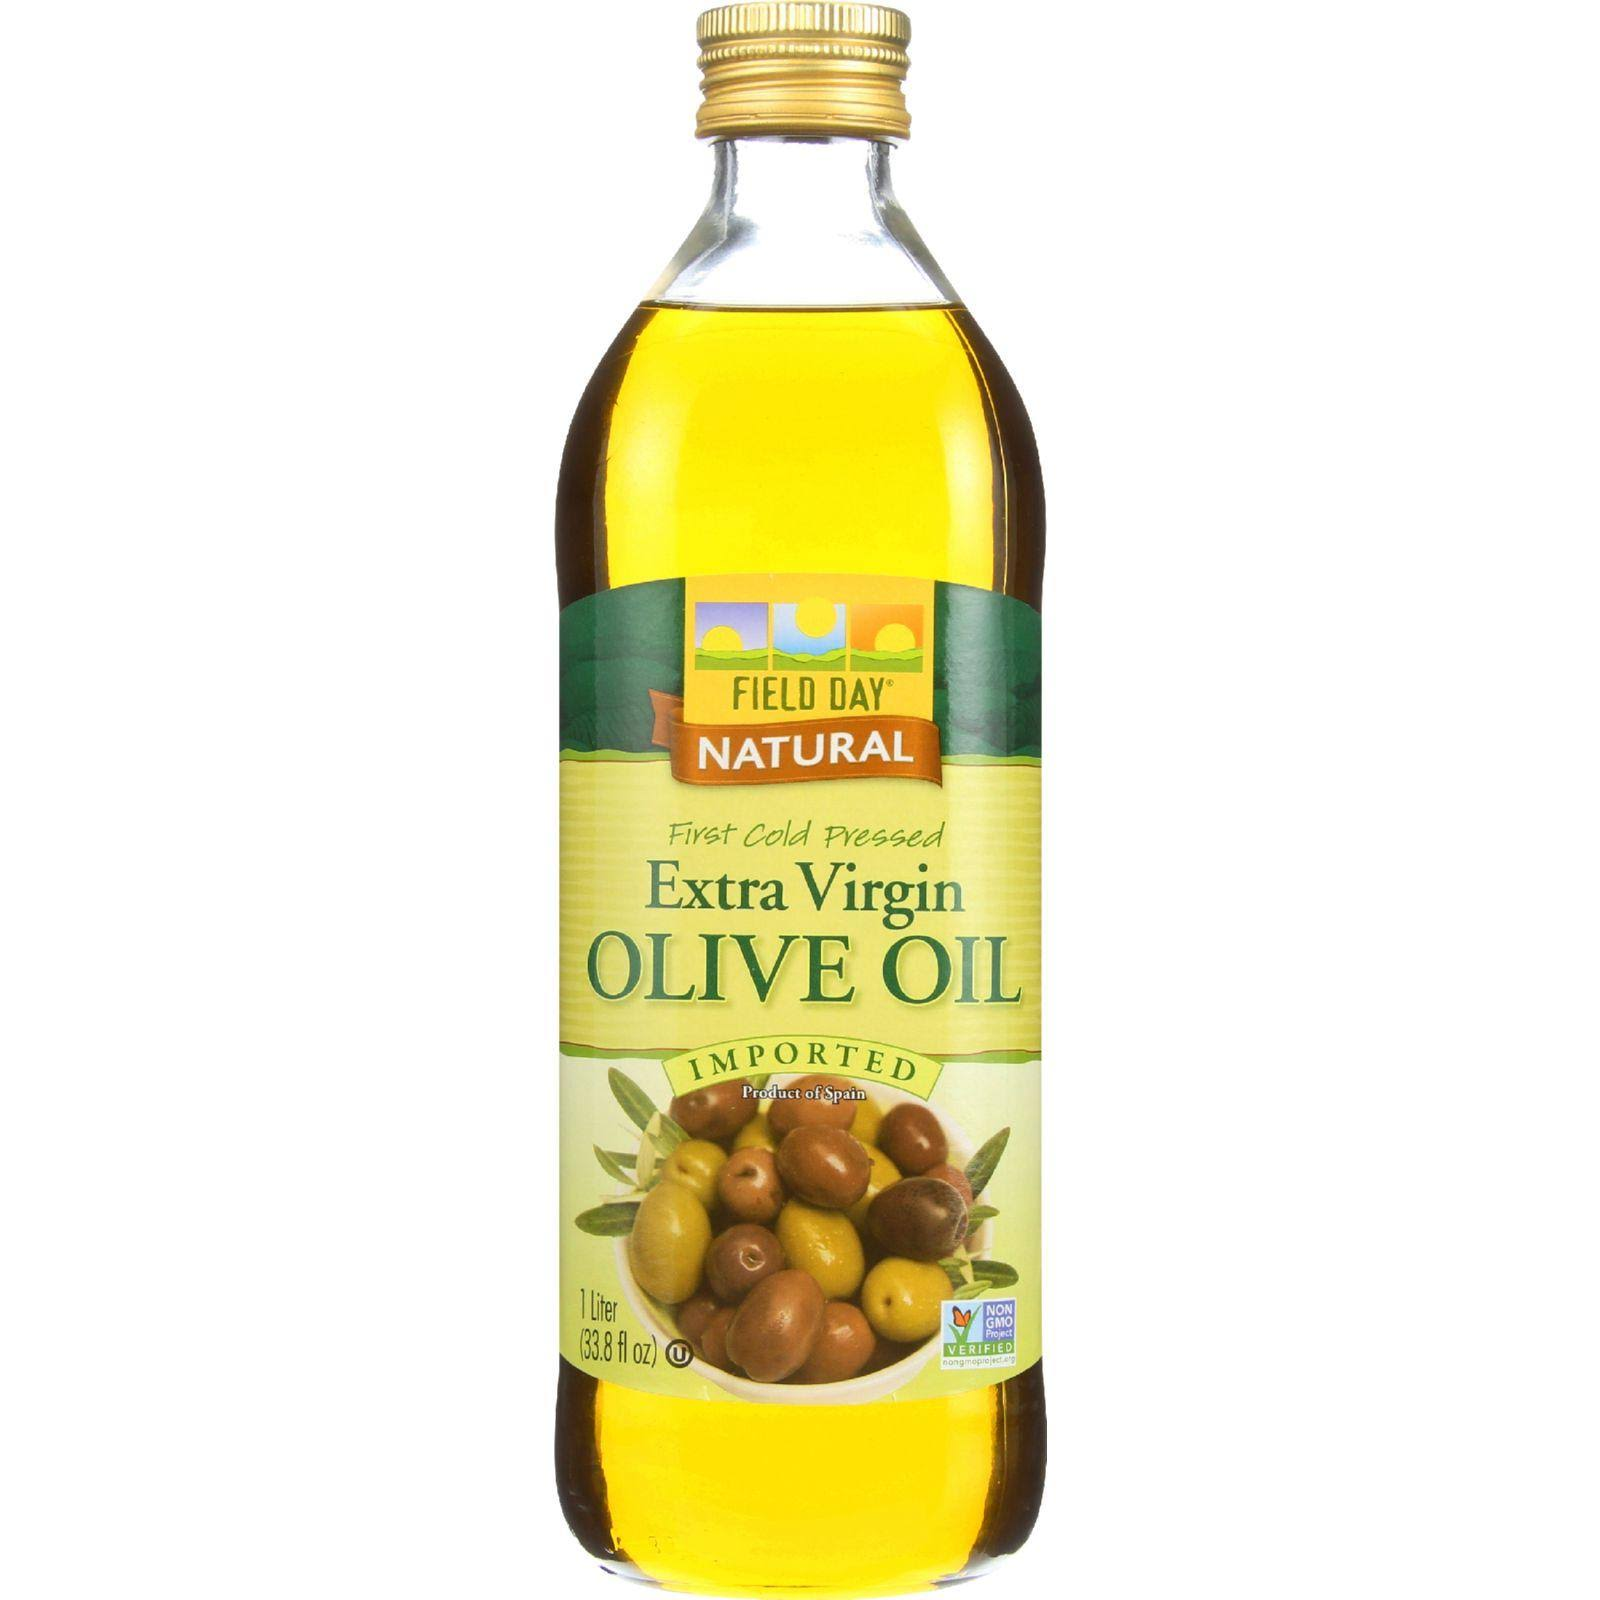 Field Day Extra Virgin Olive Oil - 1 L bottle